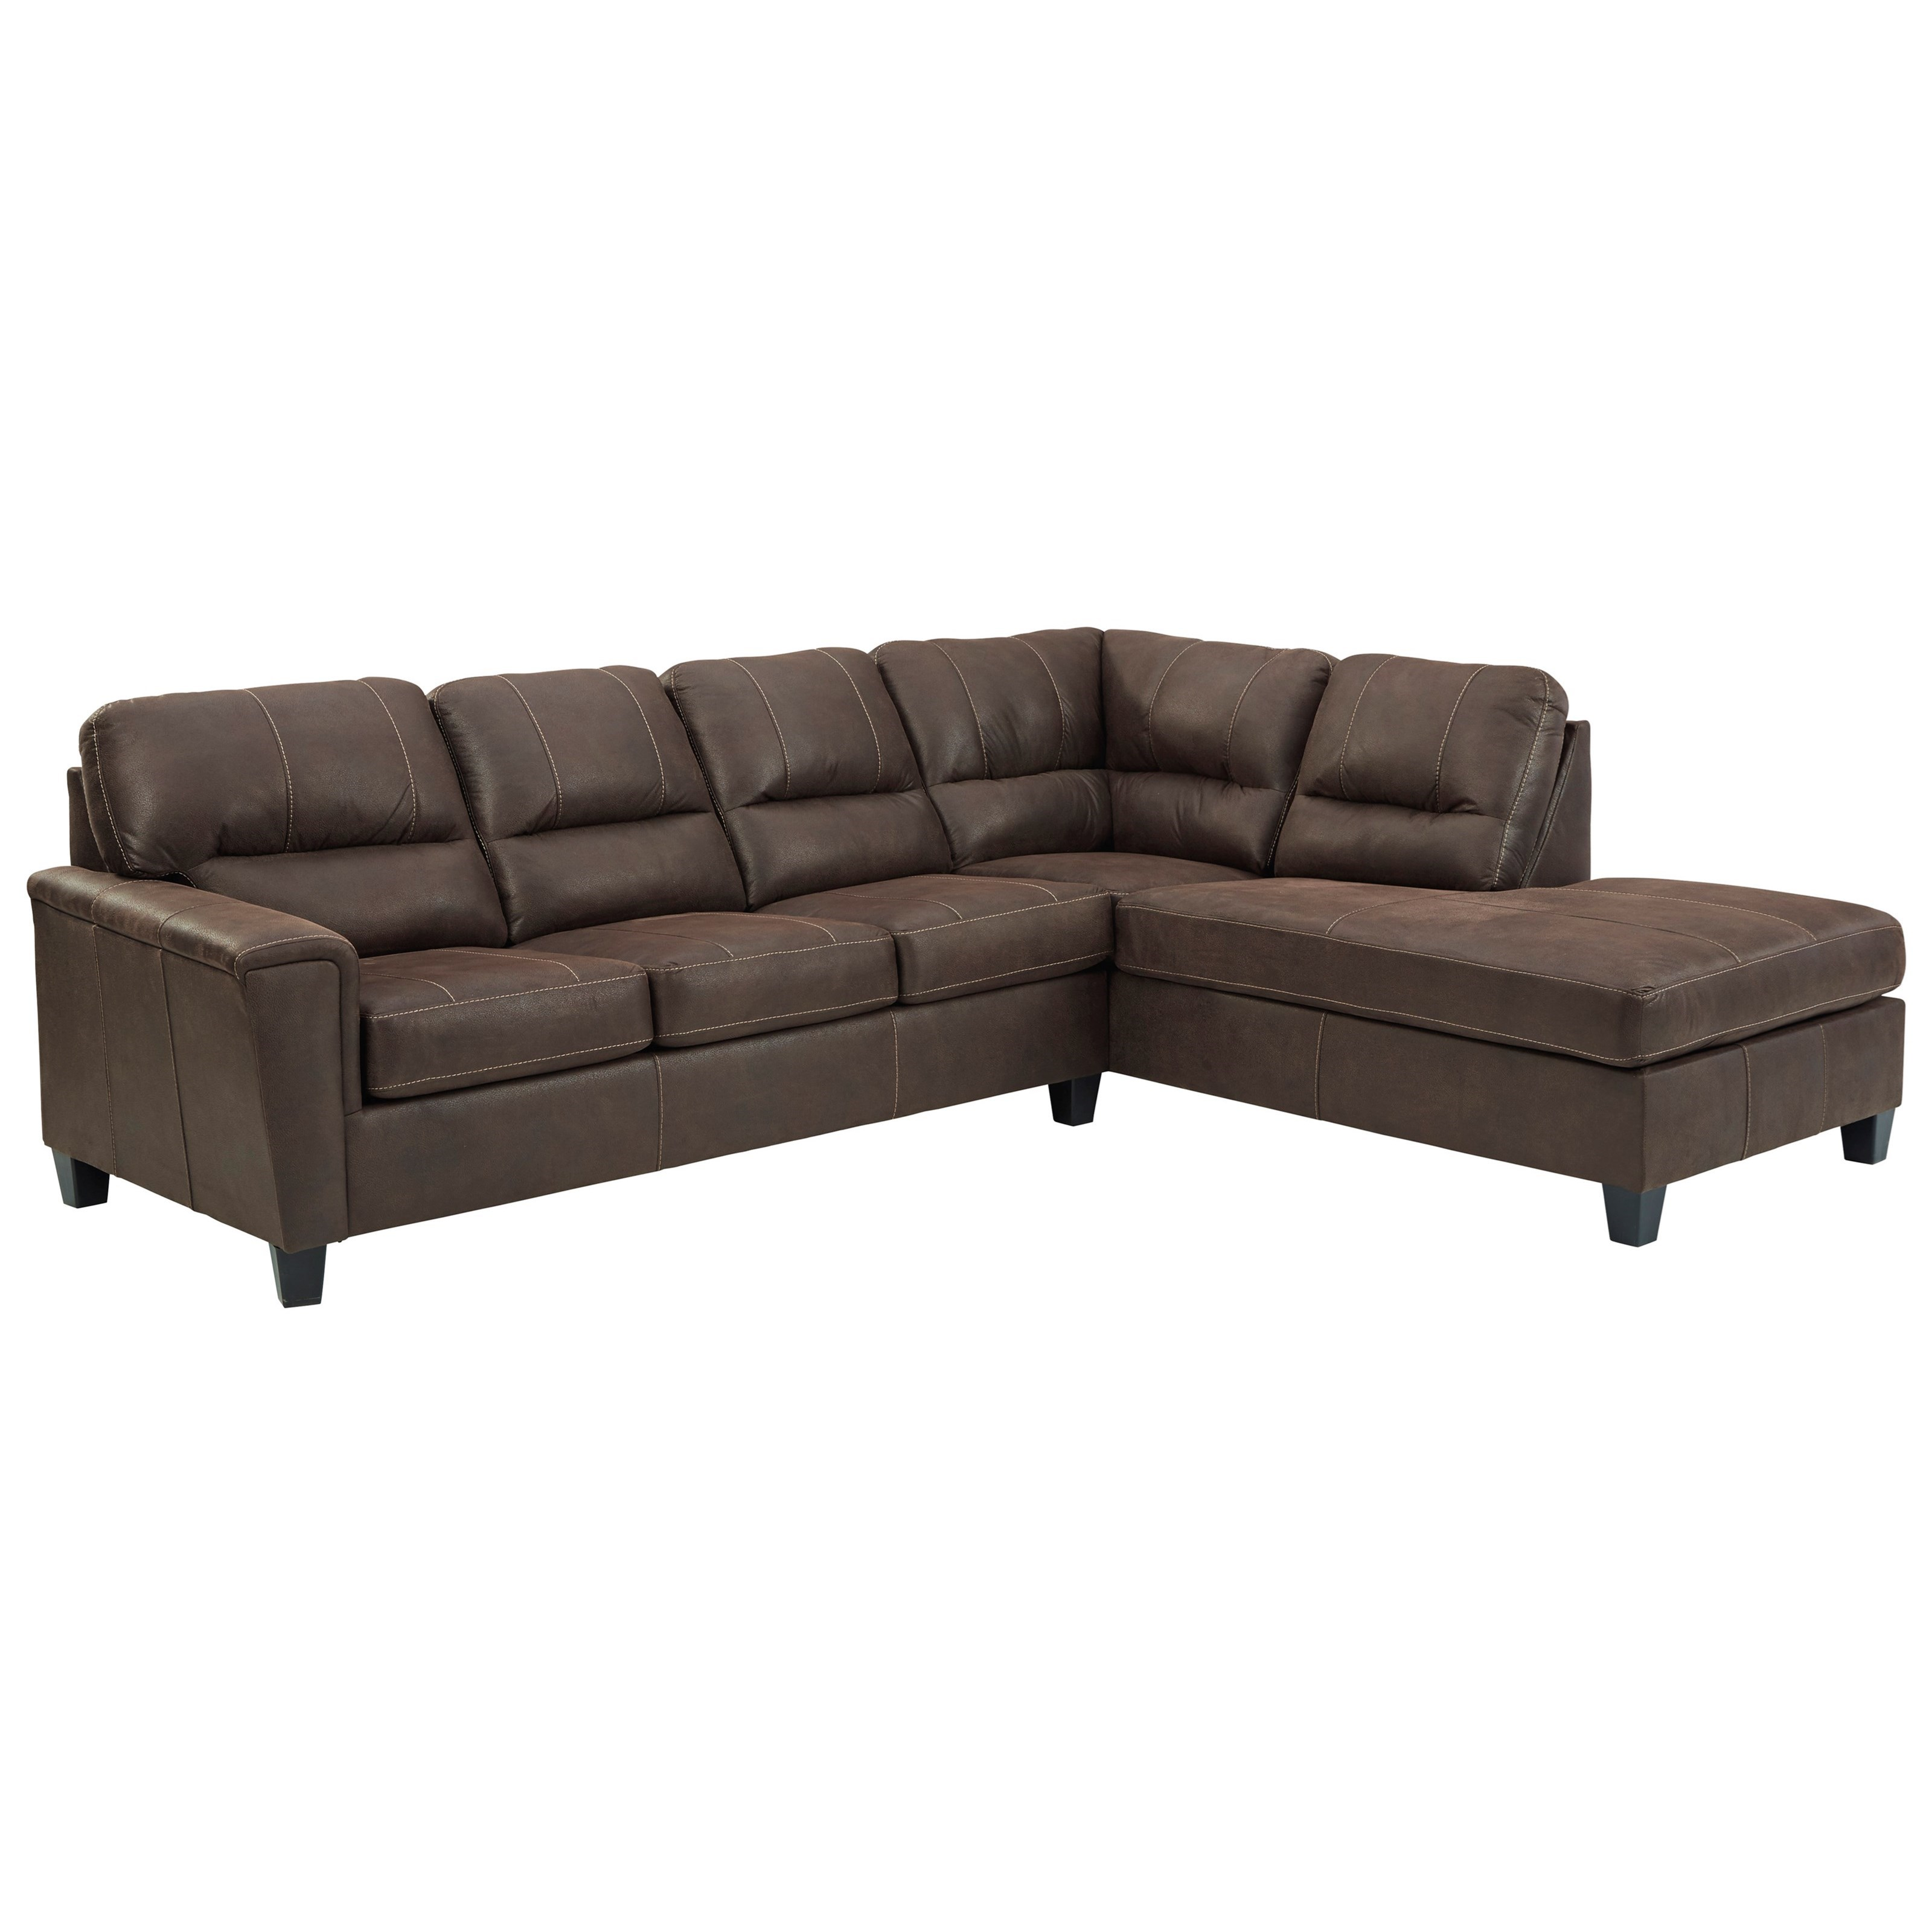 Navi 2-Piece Sectional w/ Right Chaise & Sleeper by Signature Design by Ashley at Household Furniture